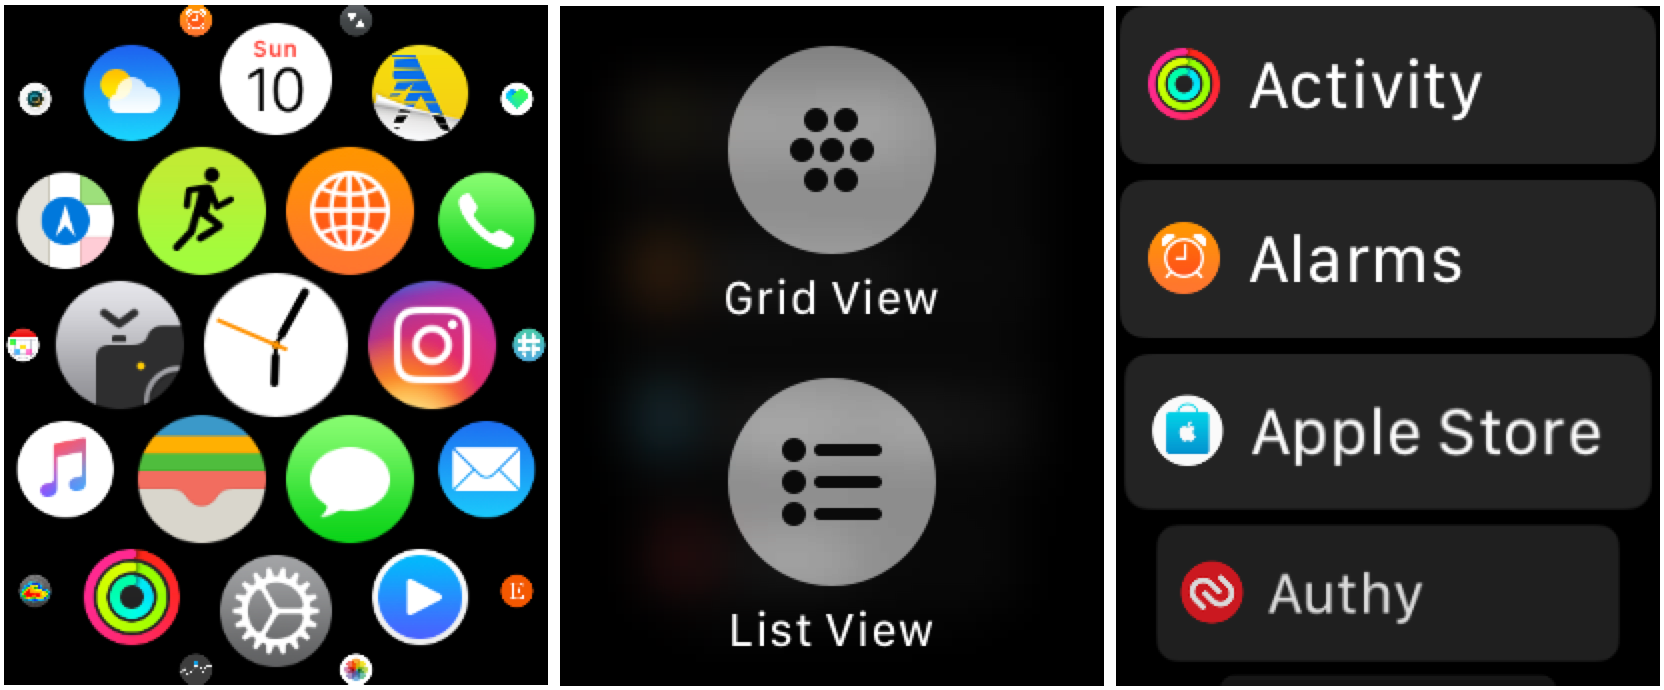 watchOS 4 app list